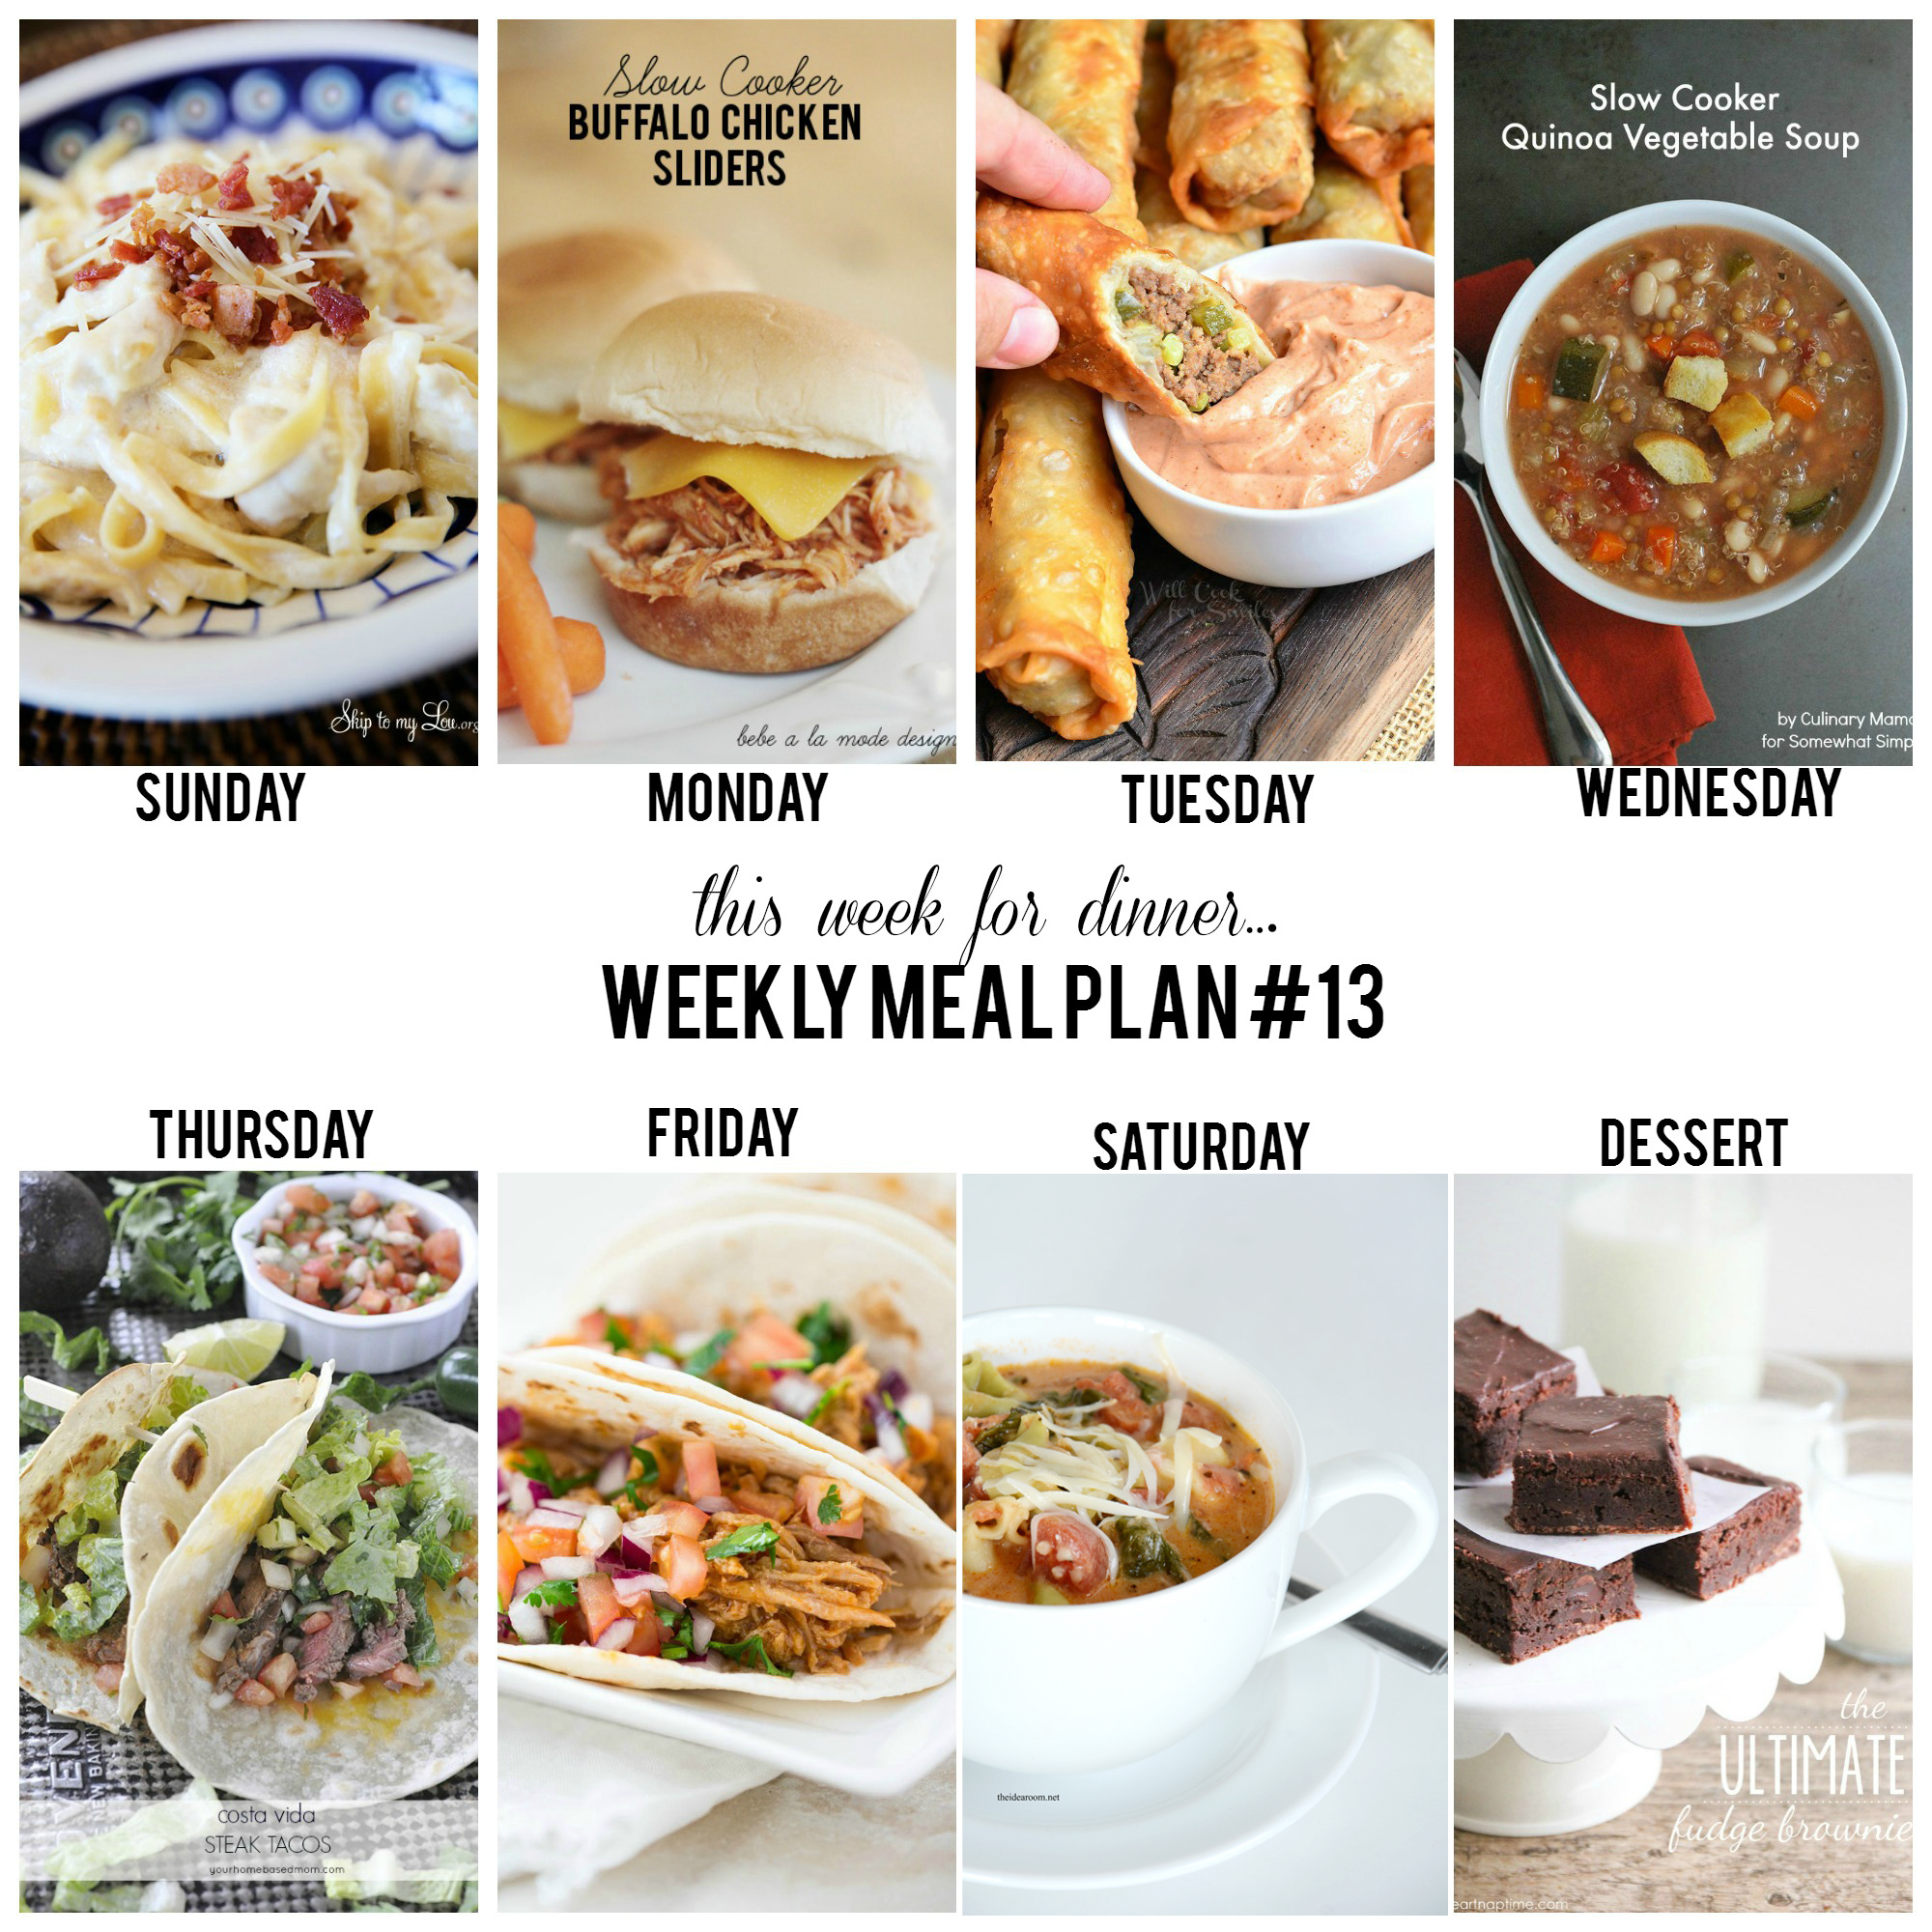 Weekly-Meal-Plan-13 edited